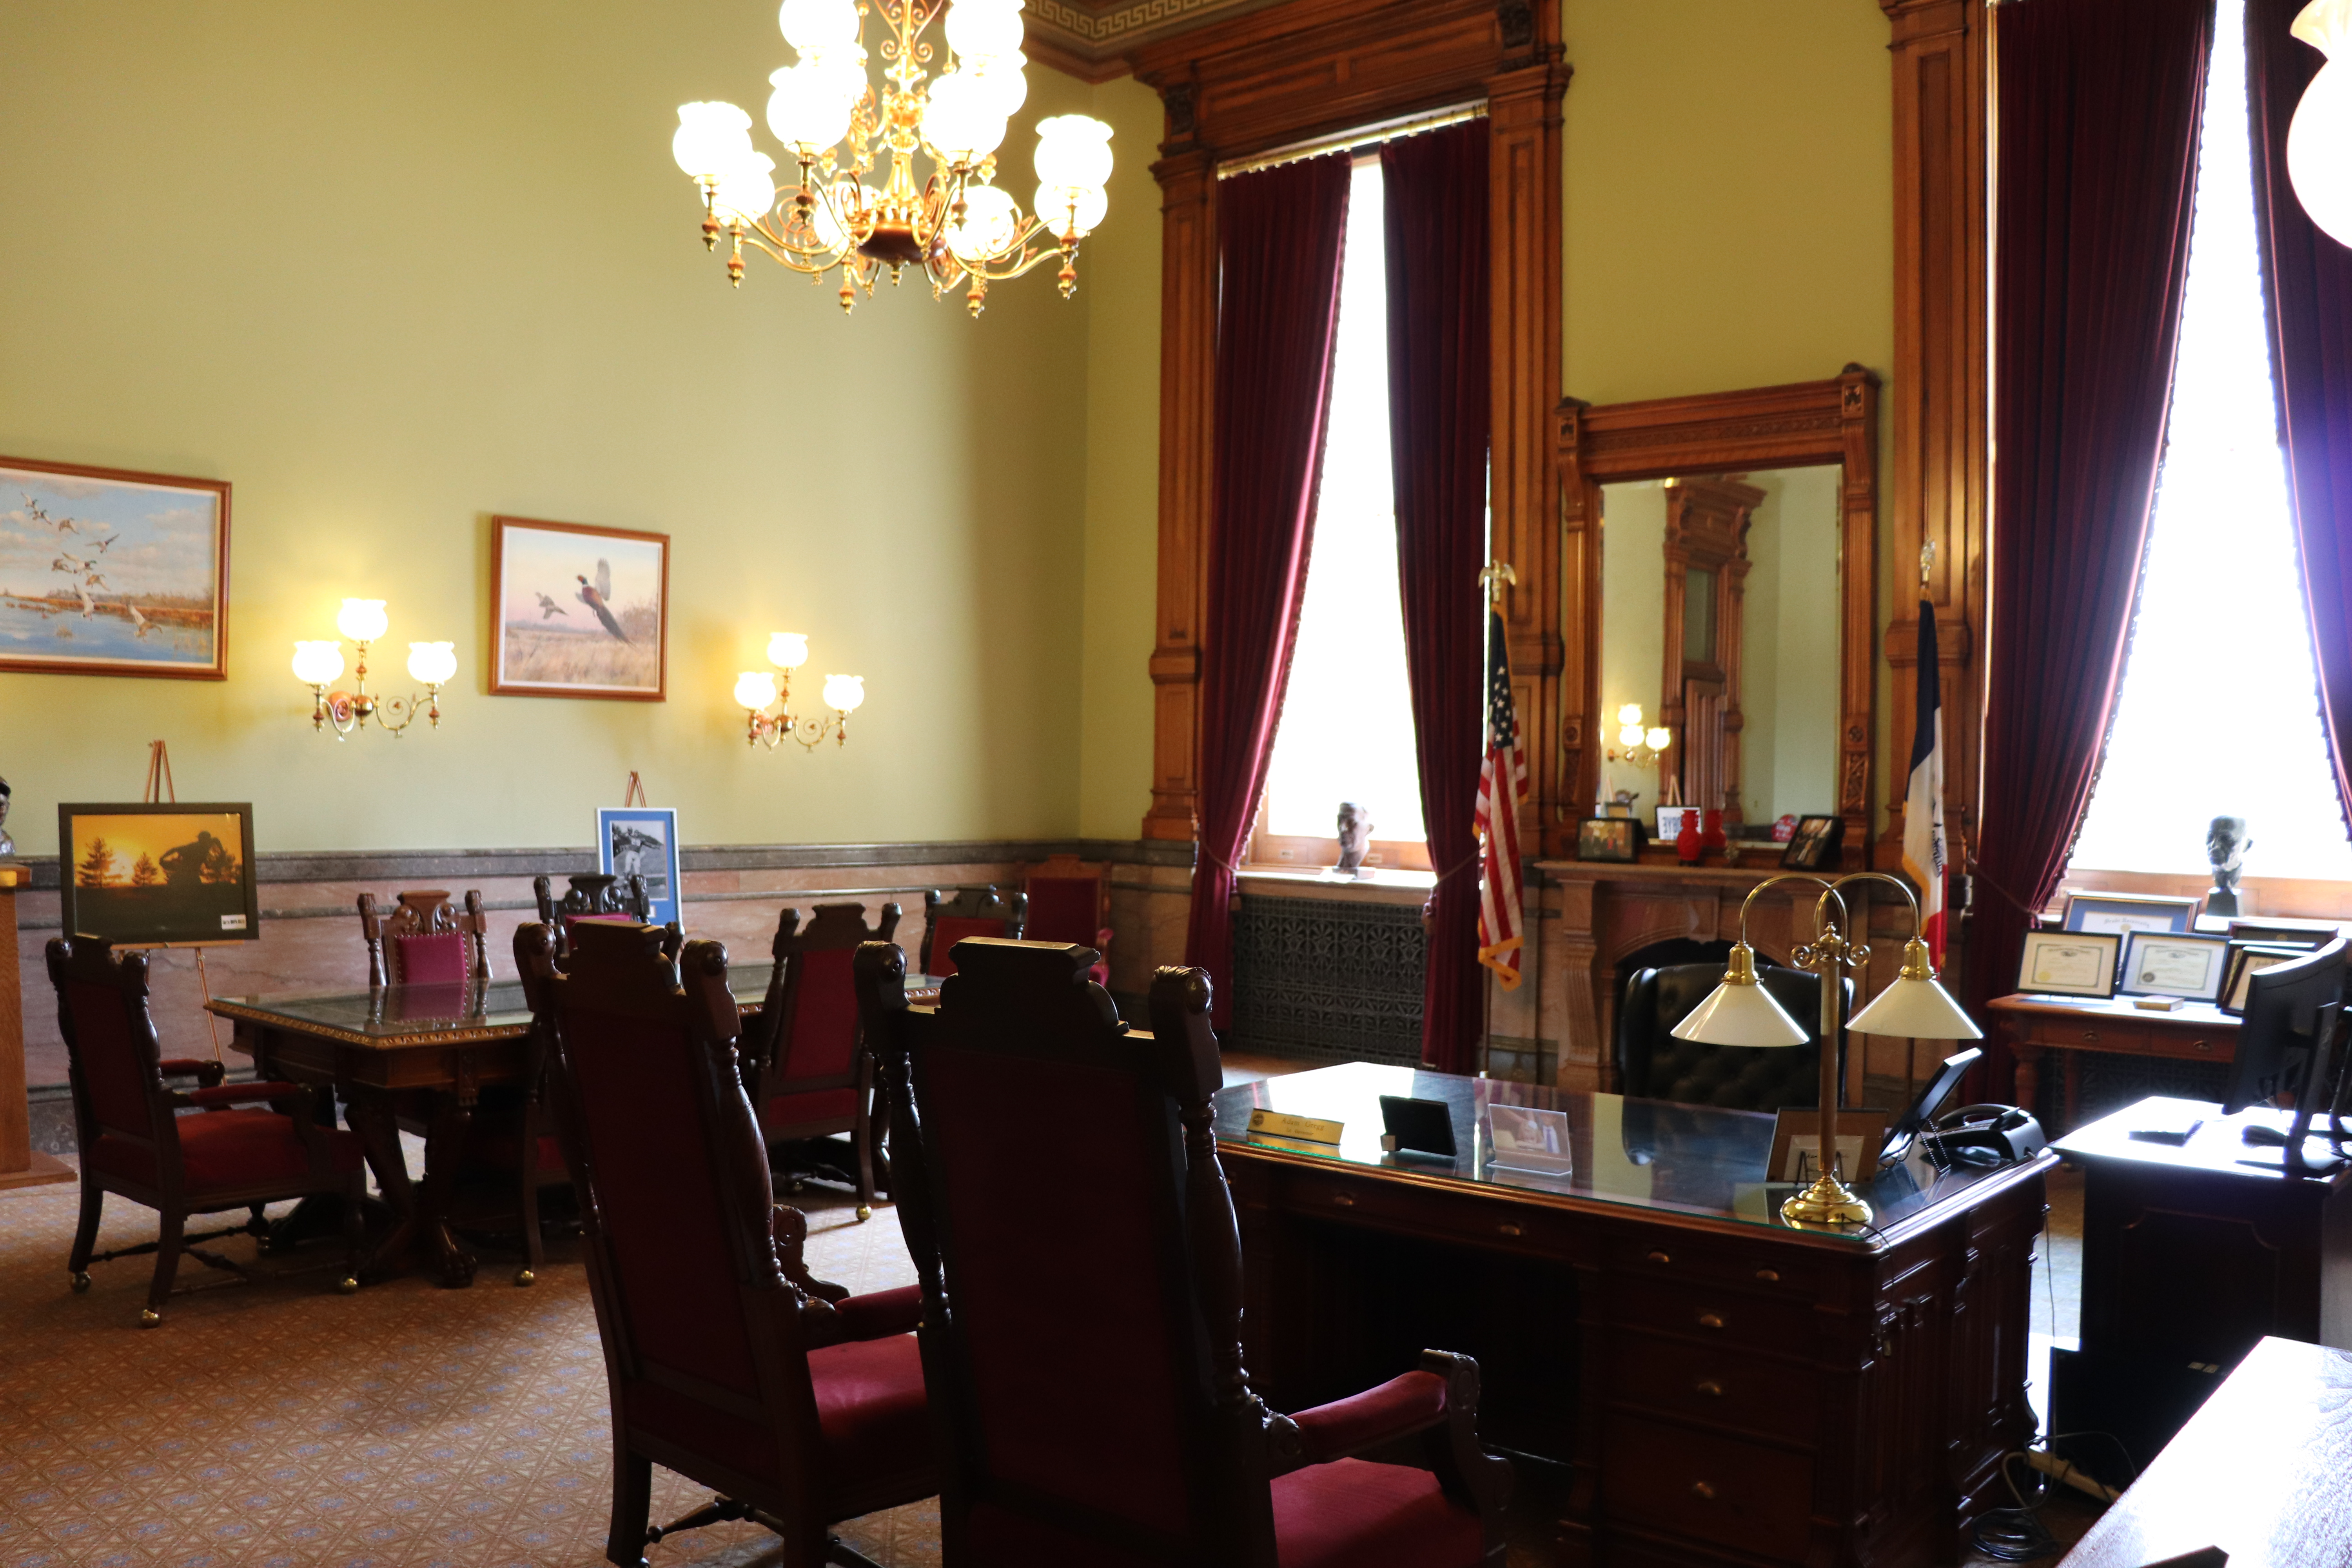 Iowa Lt. Governor's Office